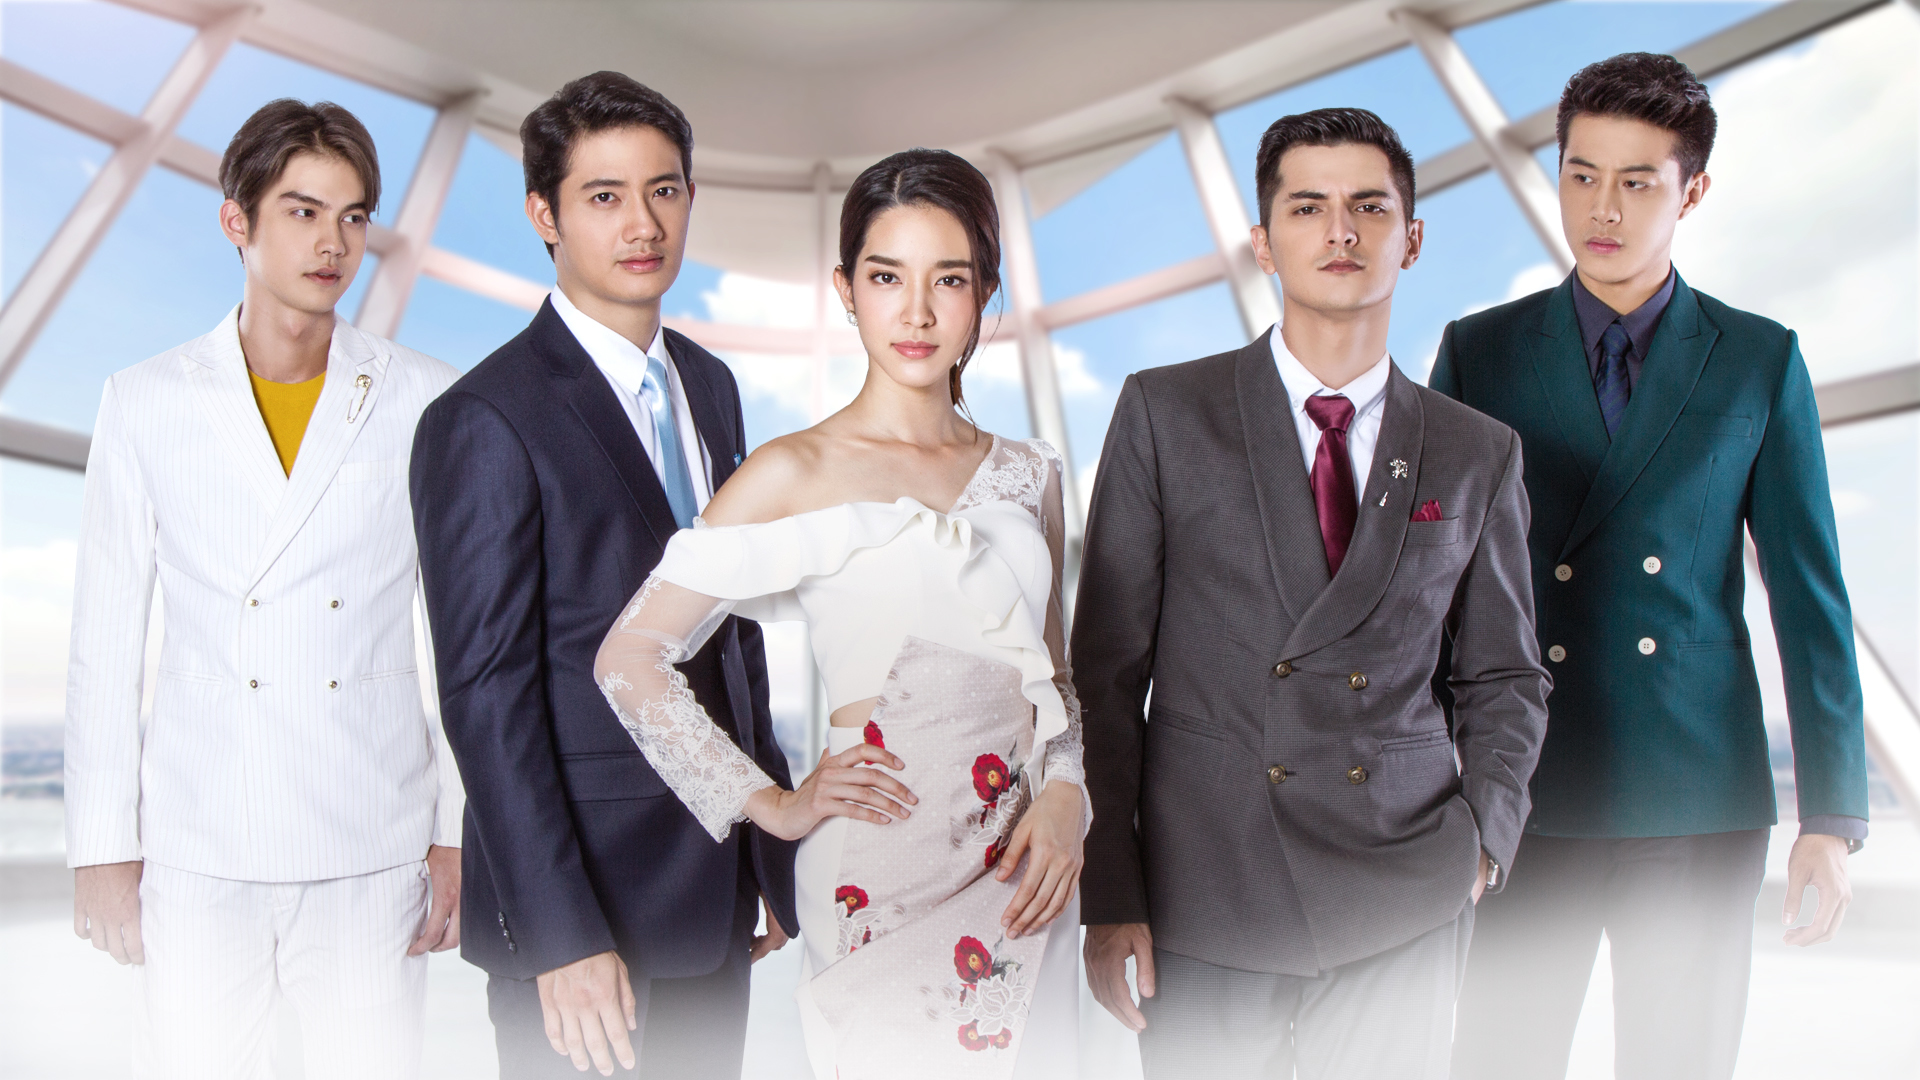 『In Time With You ~君の隣に~』 (c)Artop Media (Thailand) Co., Ltd.